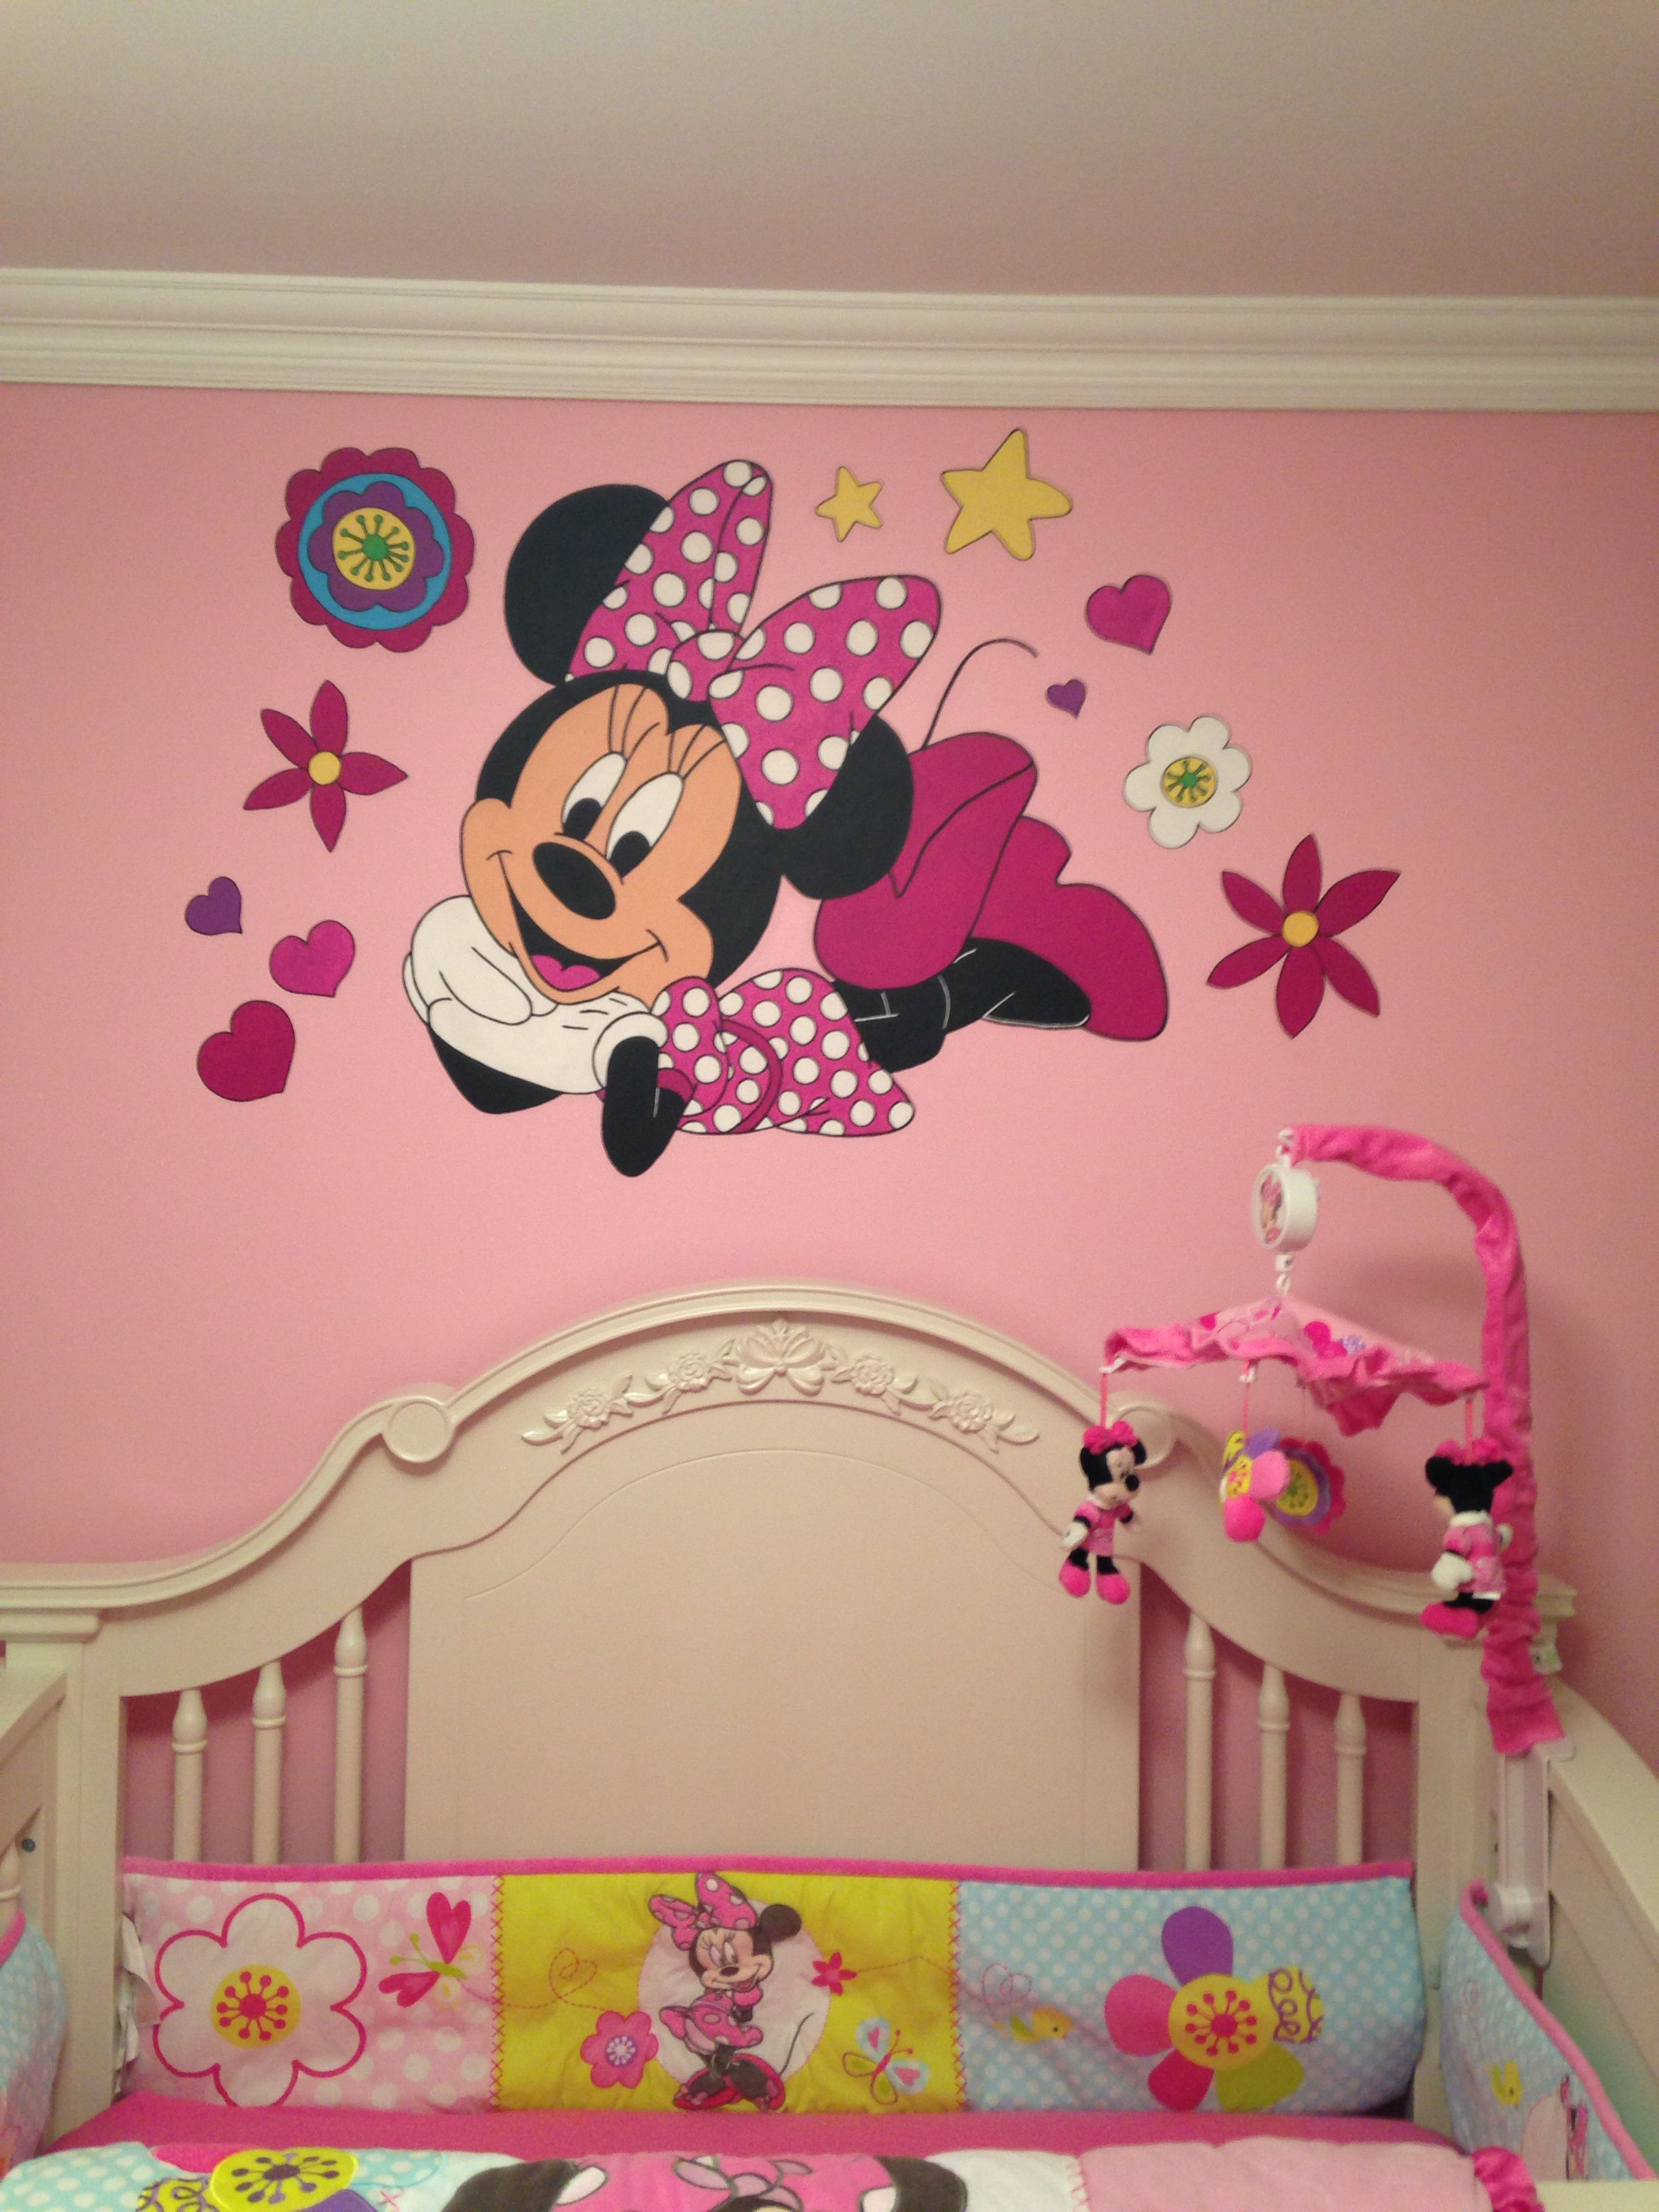 Chambre Minnie Bebe Minnie Mouse Mural In Baby Nursery Katelyns Bedroom